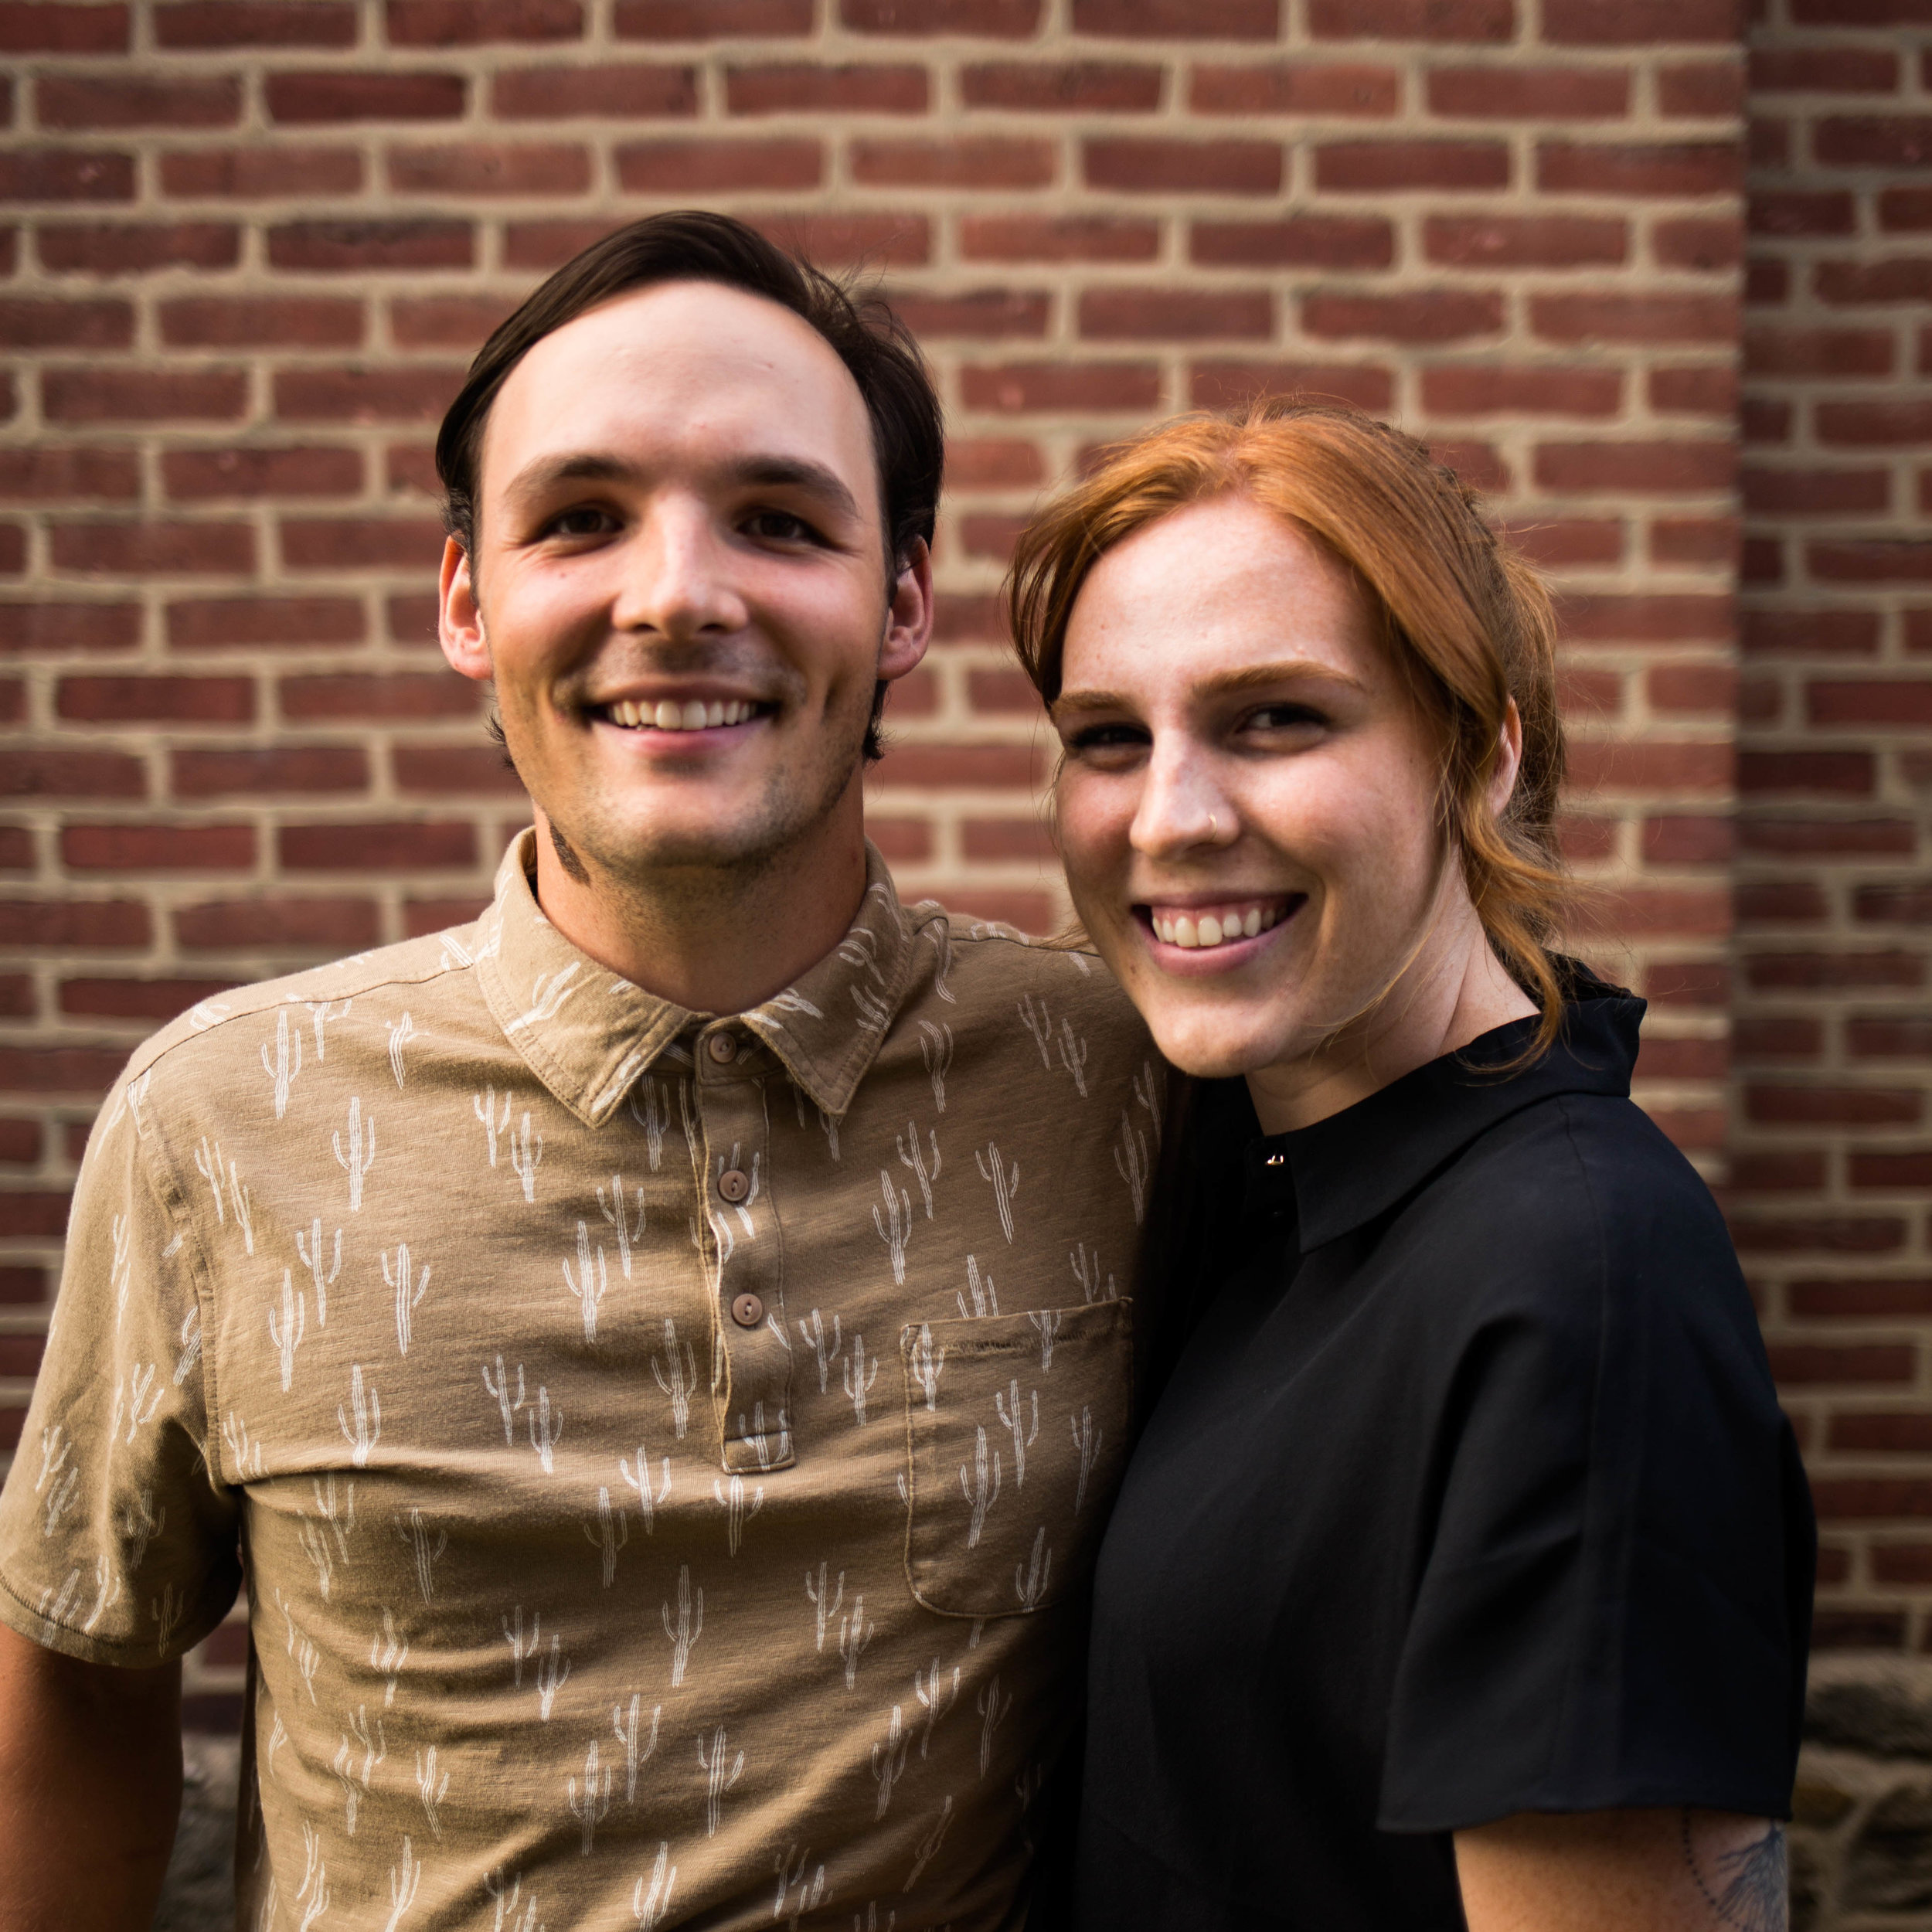 Shane and Sarah Franklin - Shane and Sarah have been happily married since the fall of 2017. They are passionate about seeing lost souls come to a saving knowledge of Jesus Christ. They also long to see new and old believers set on fire for the Kingdom of God. Shane is pursuing church planting and pastoral ministry with the desire to see the Gospel break out in unprecedented ways in unchurched areas. Sarah is pursuing a career in hair and cosmetology where she knows God will give her divine opportunities to represent Christ and make Him known amongst non believers.